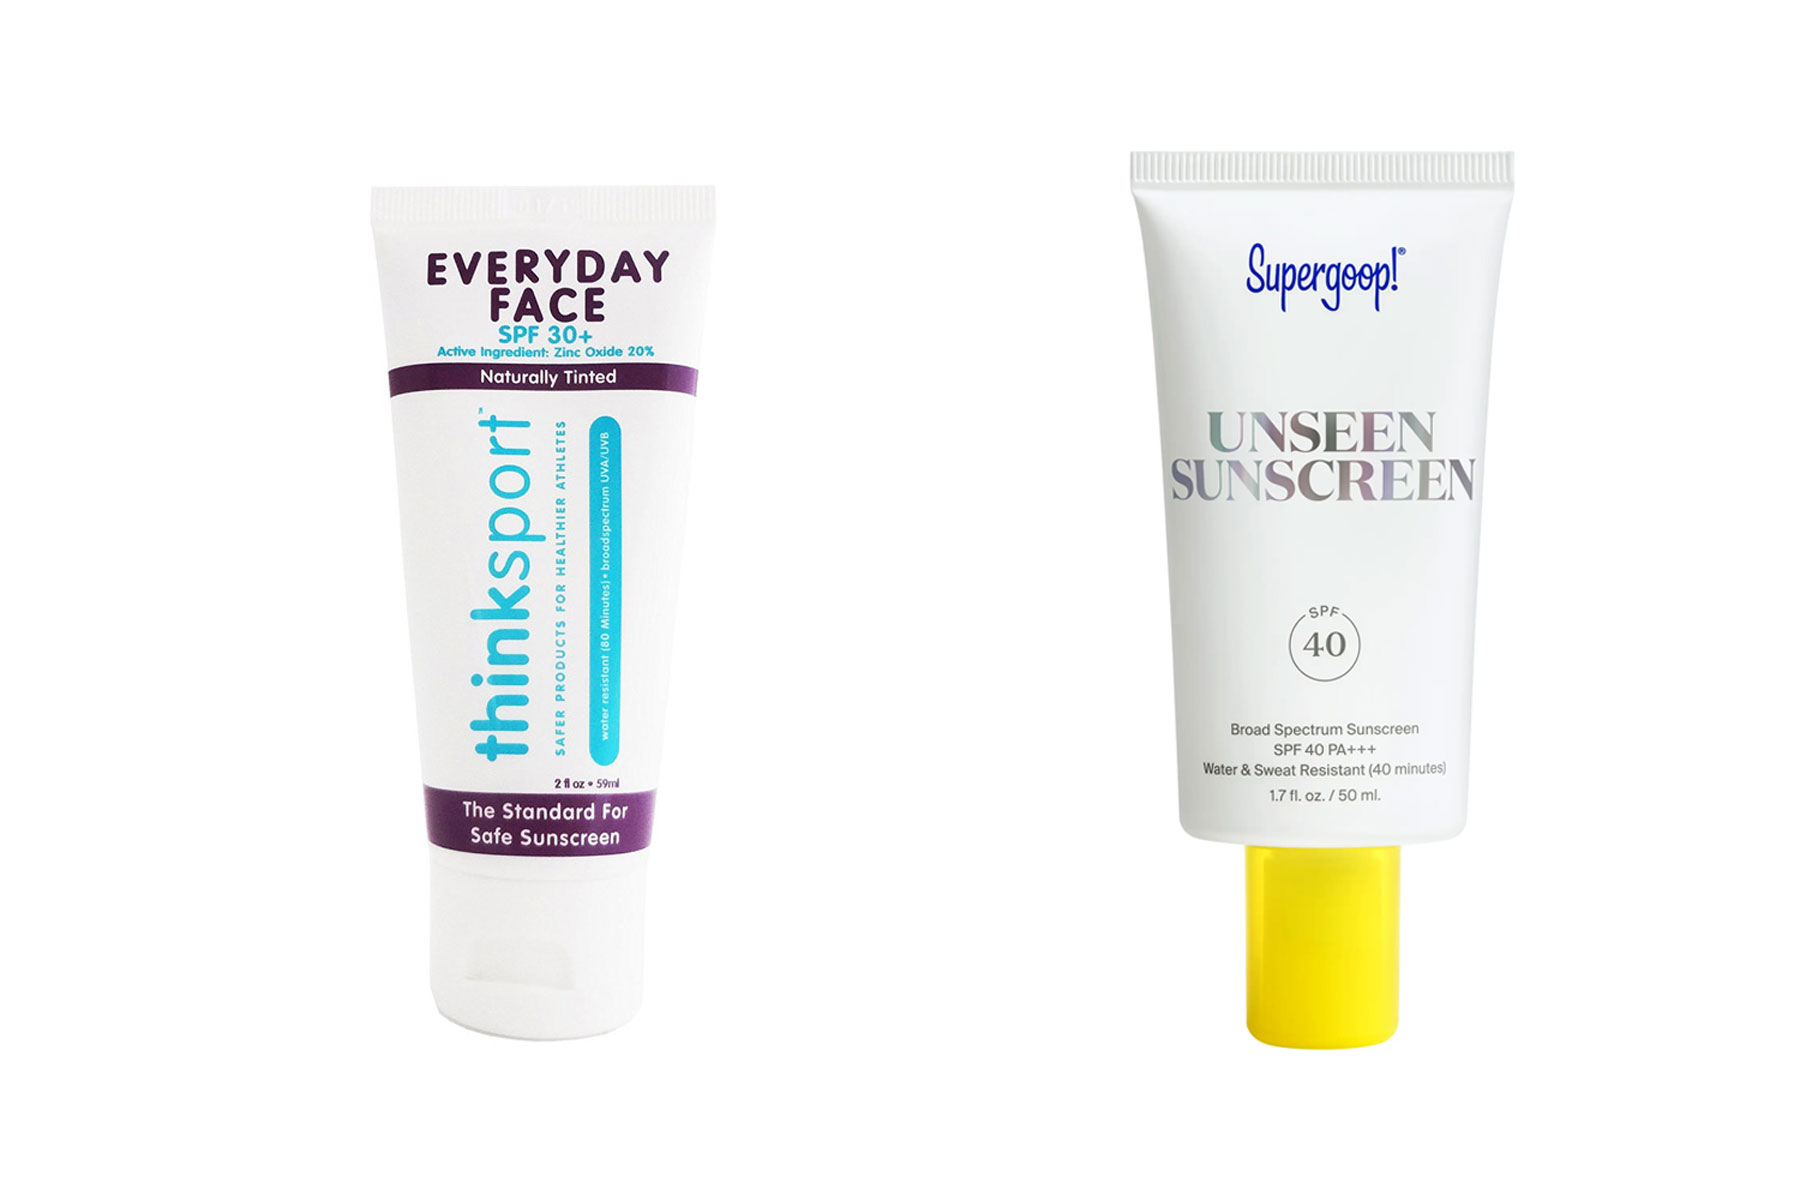 Tubes of sunscreen